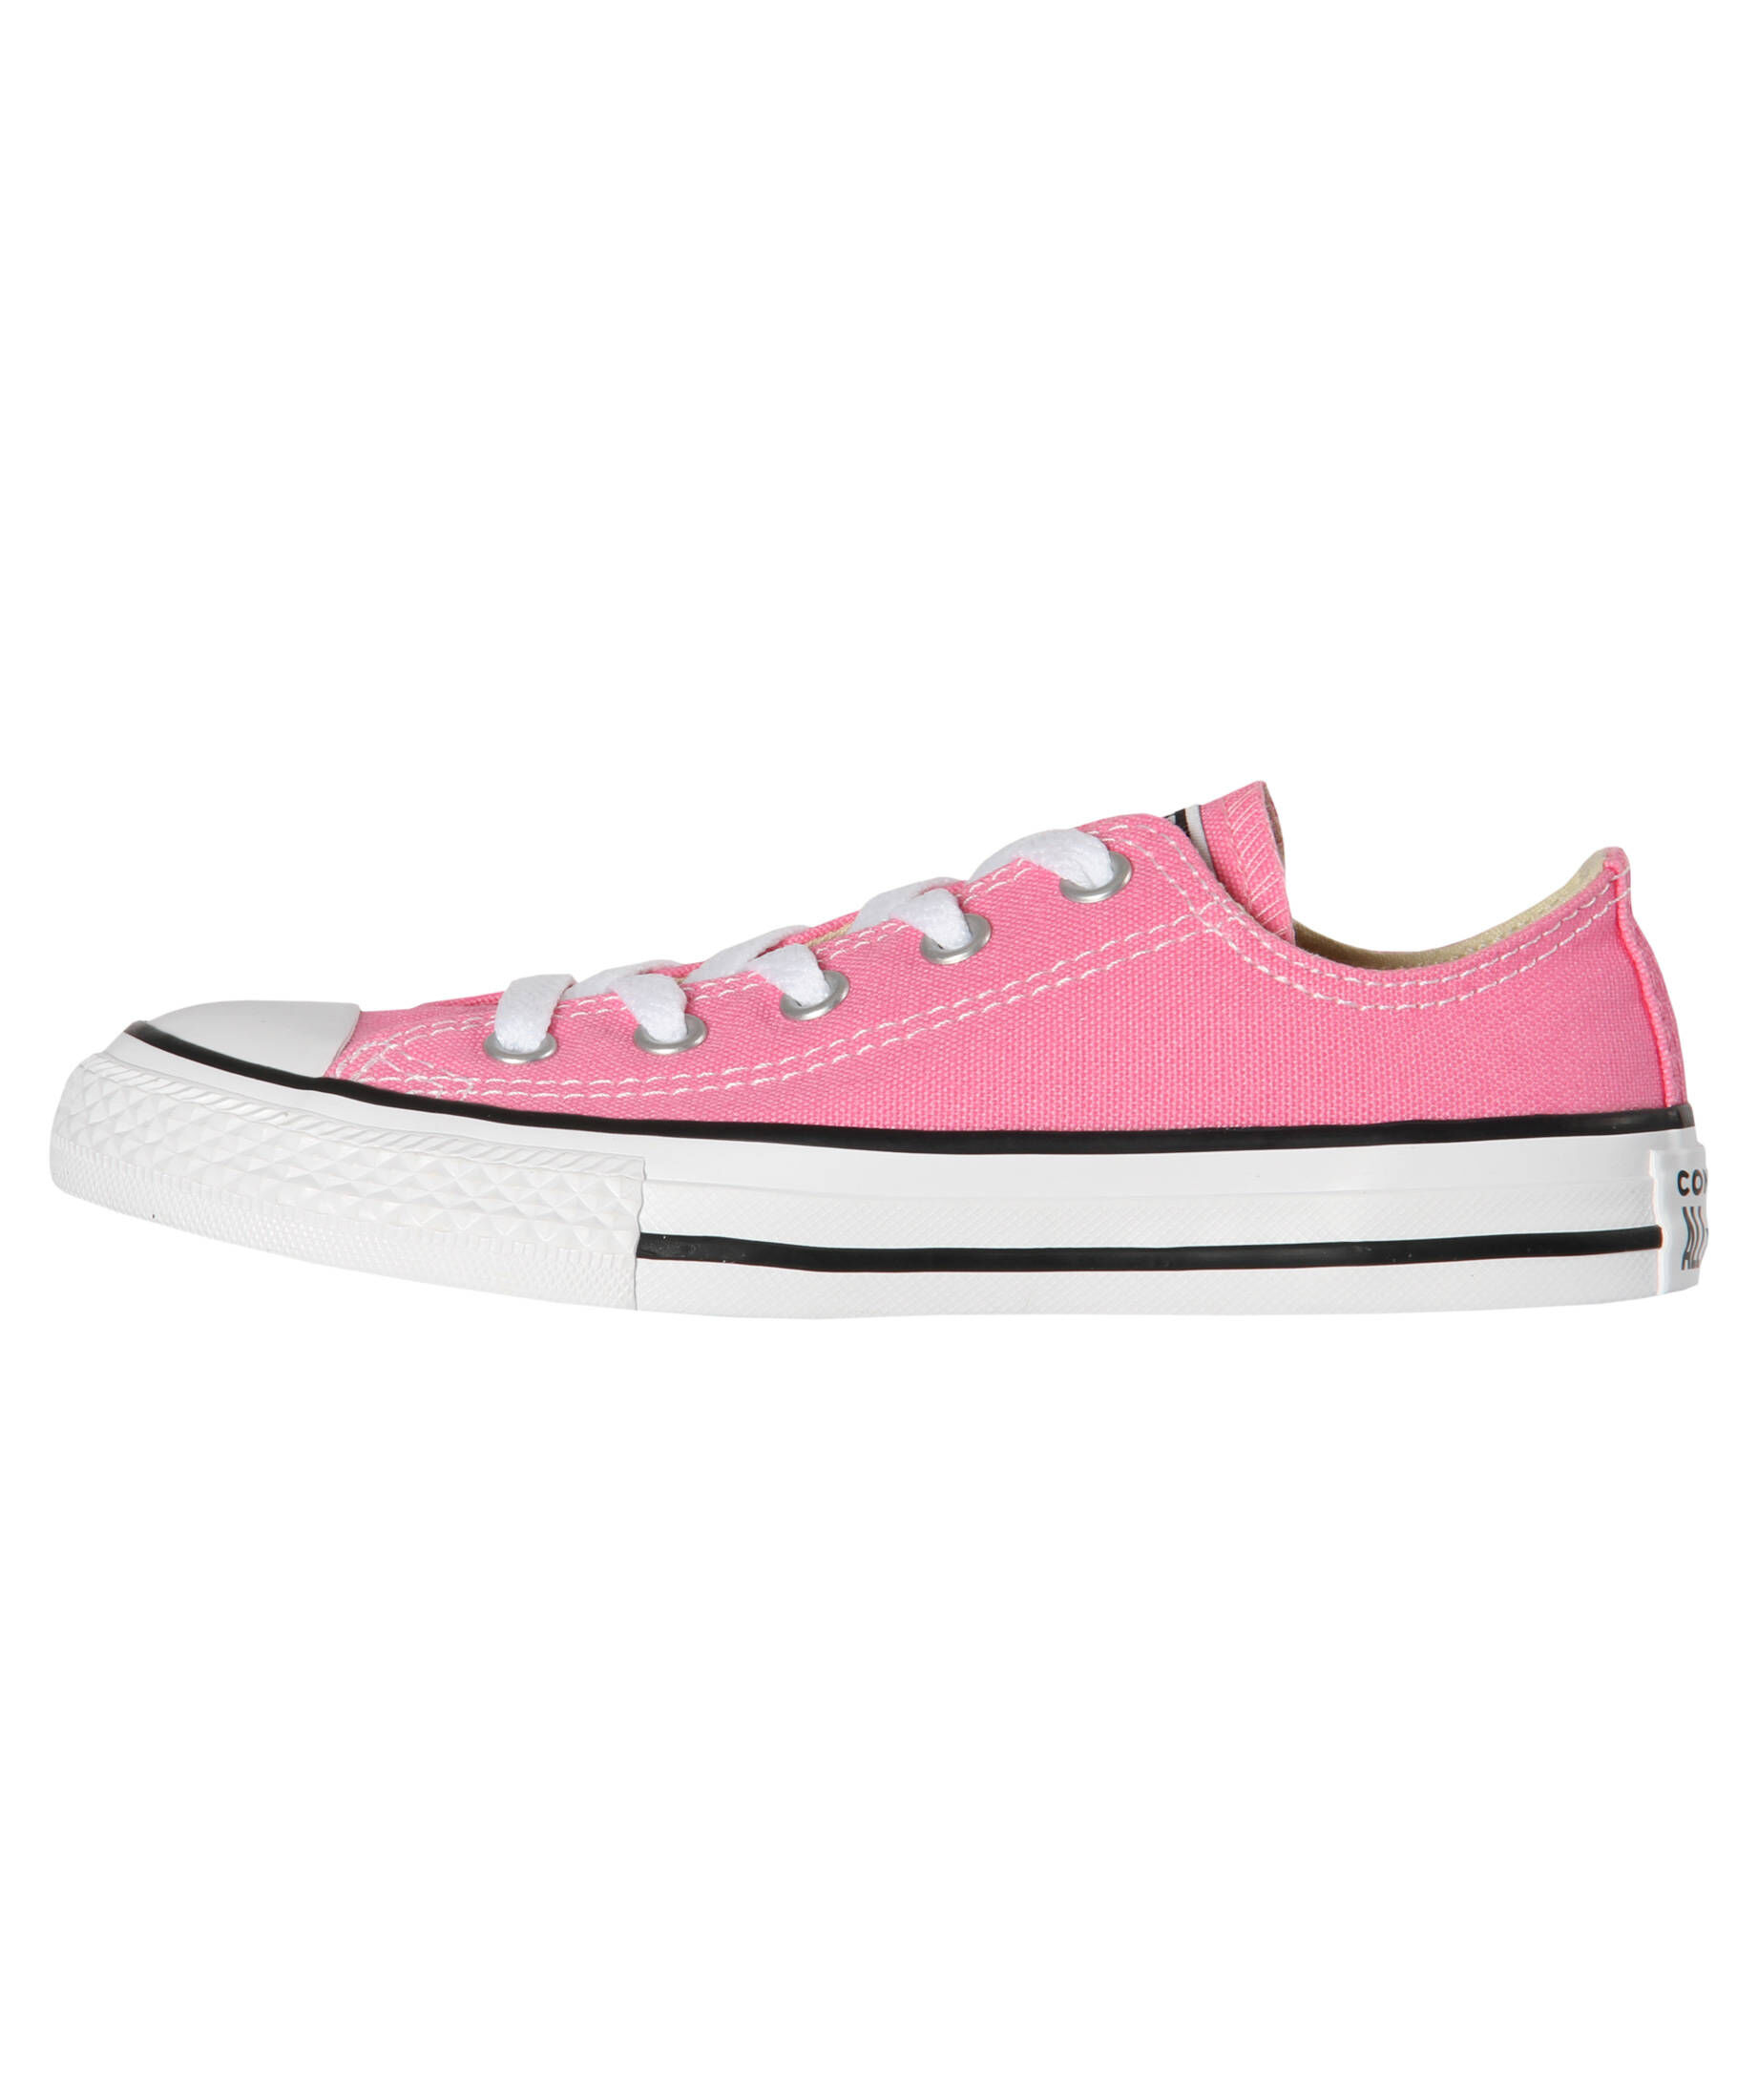 converse chucks kinder amazon